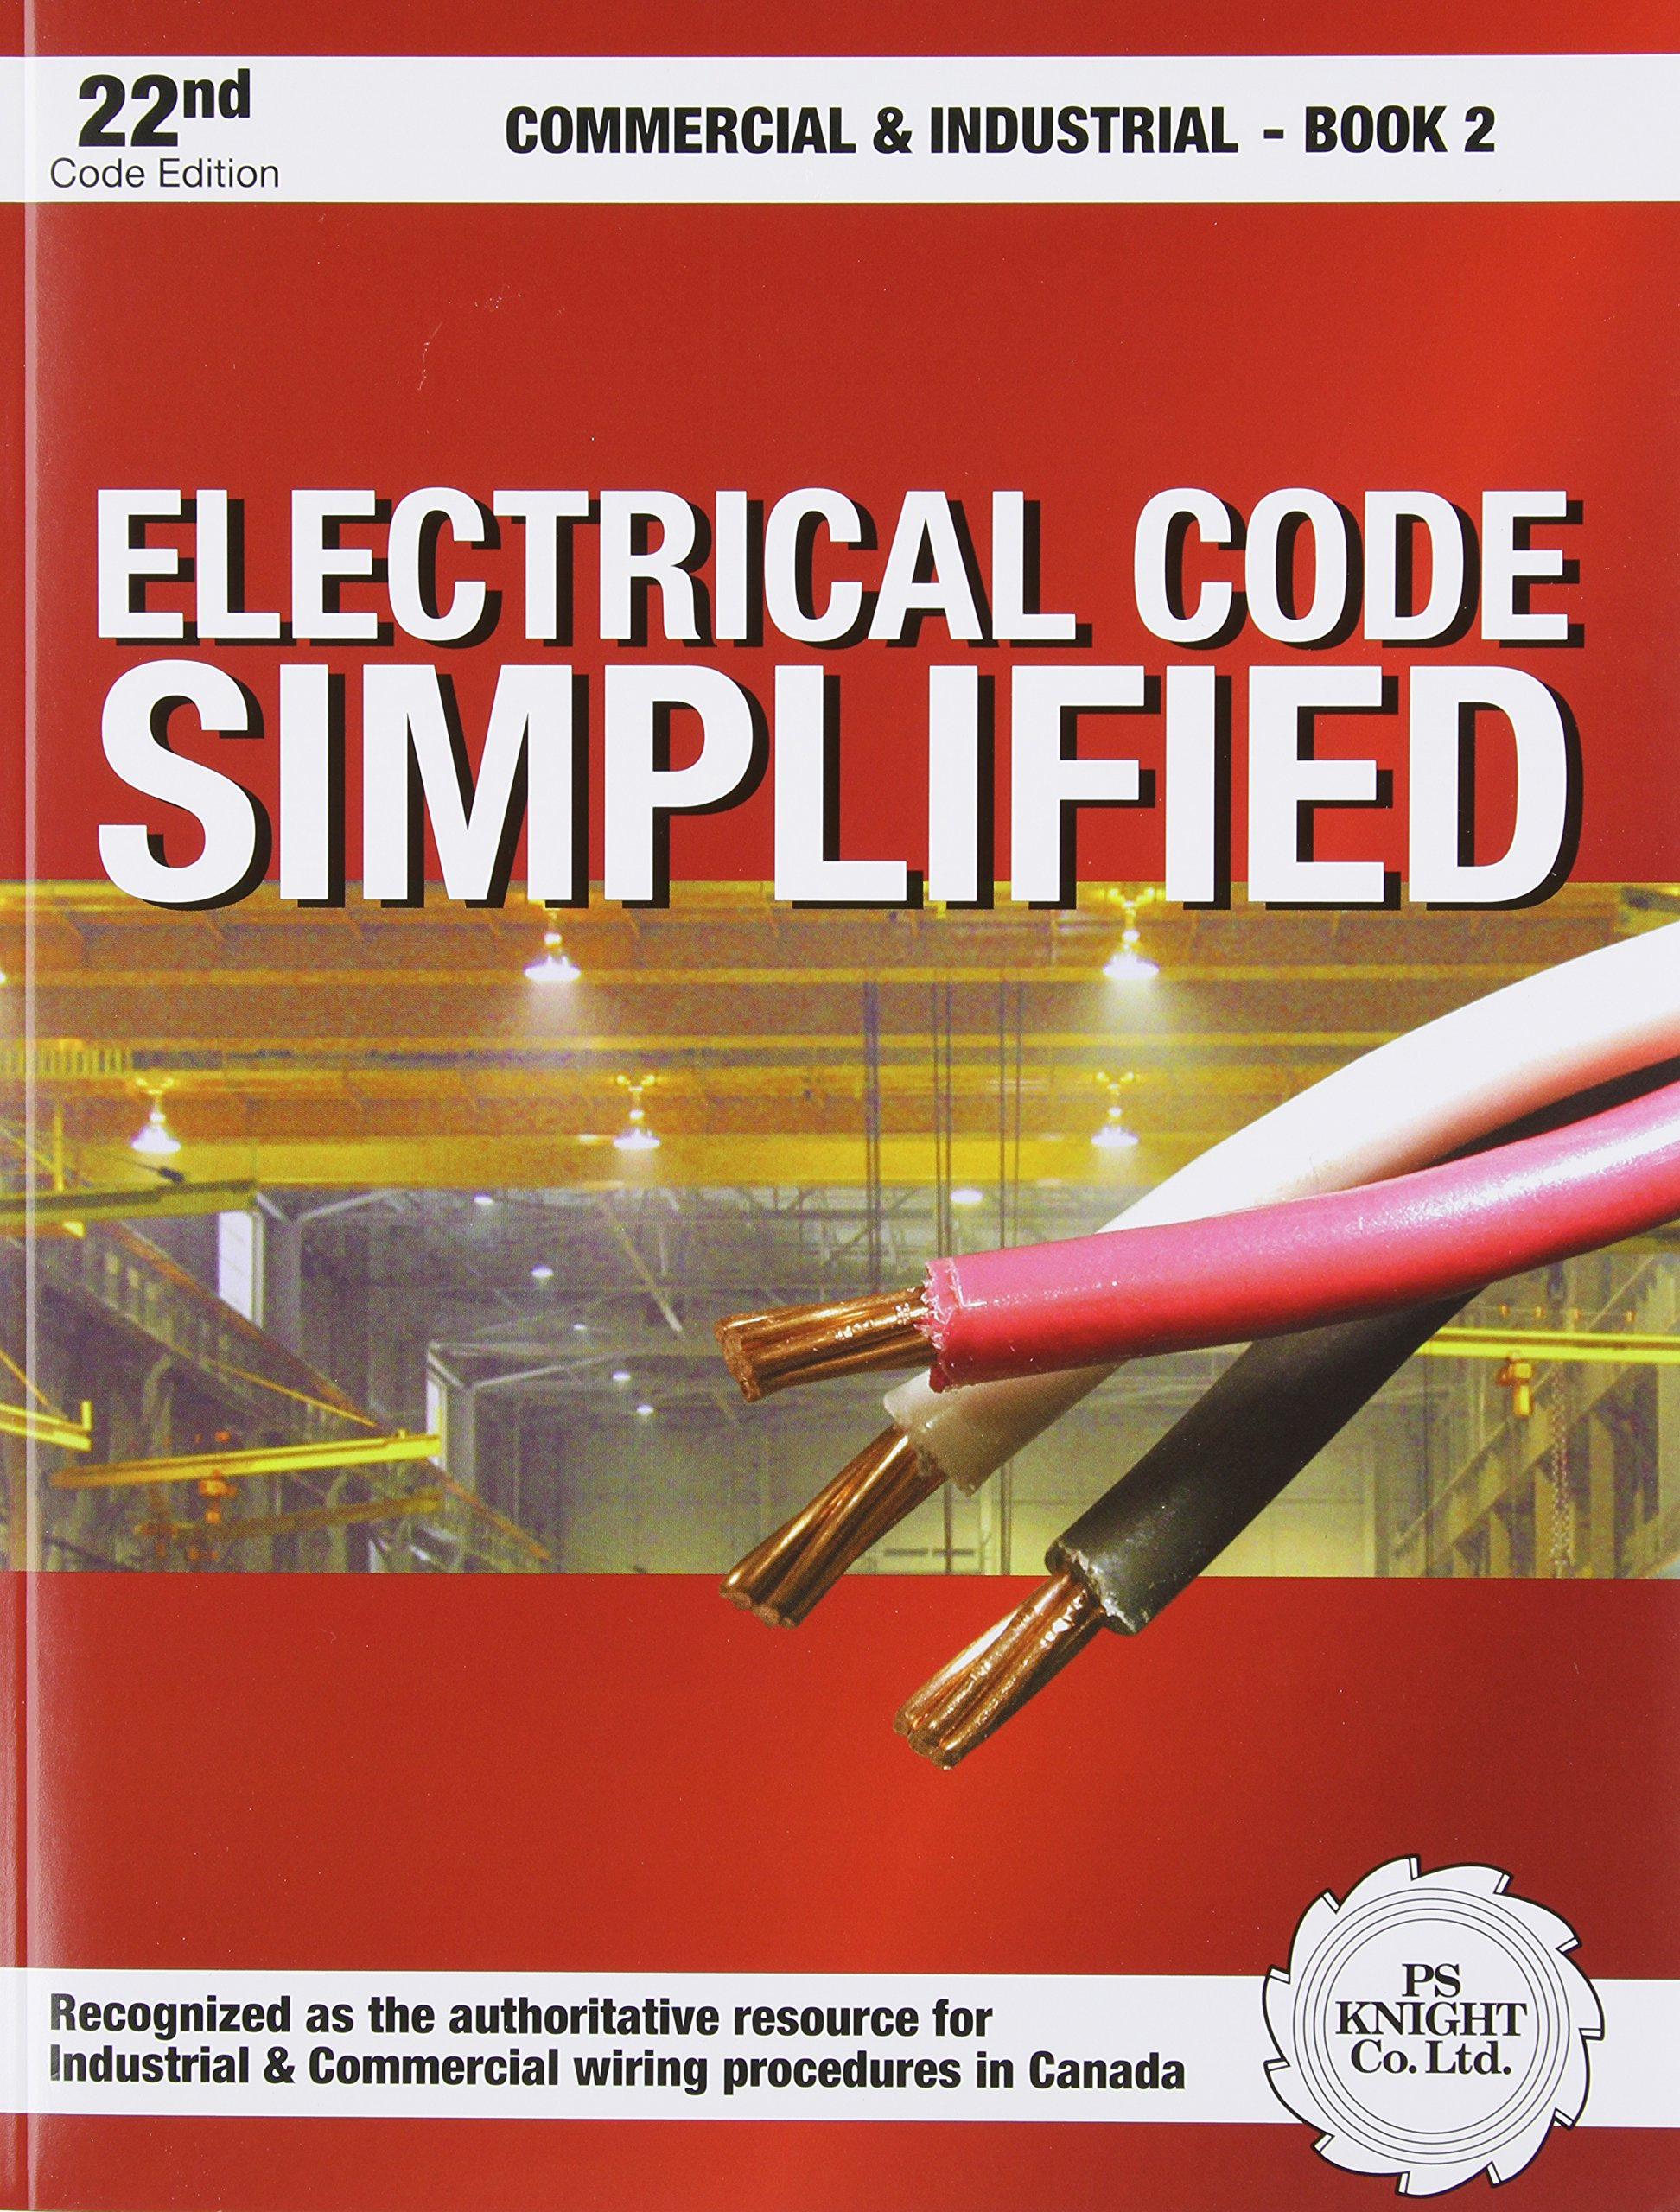 Electrical Code Simplified Commercial Industrial Book 2 P S Wiring Knight 9780920312452 Books